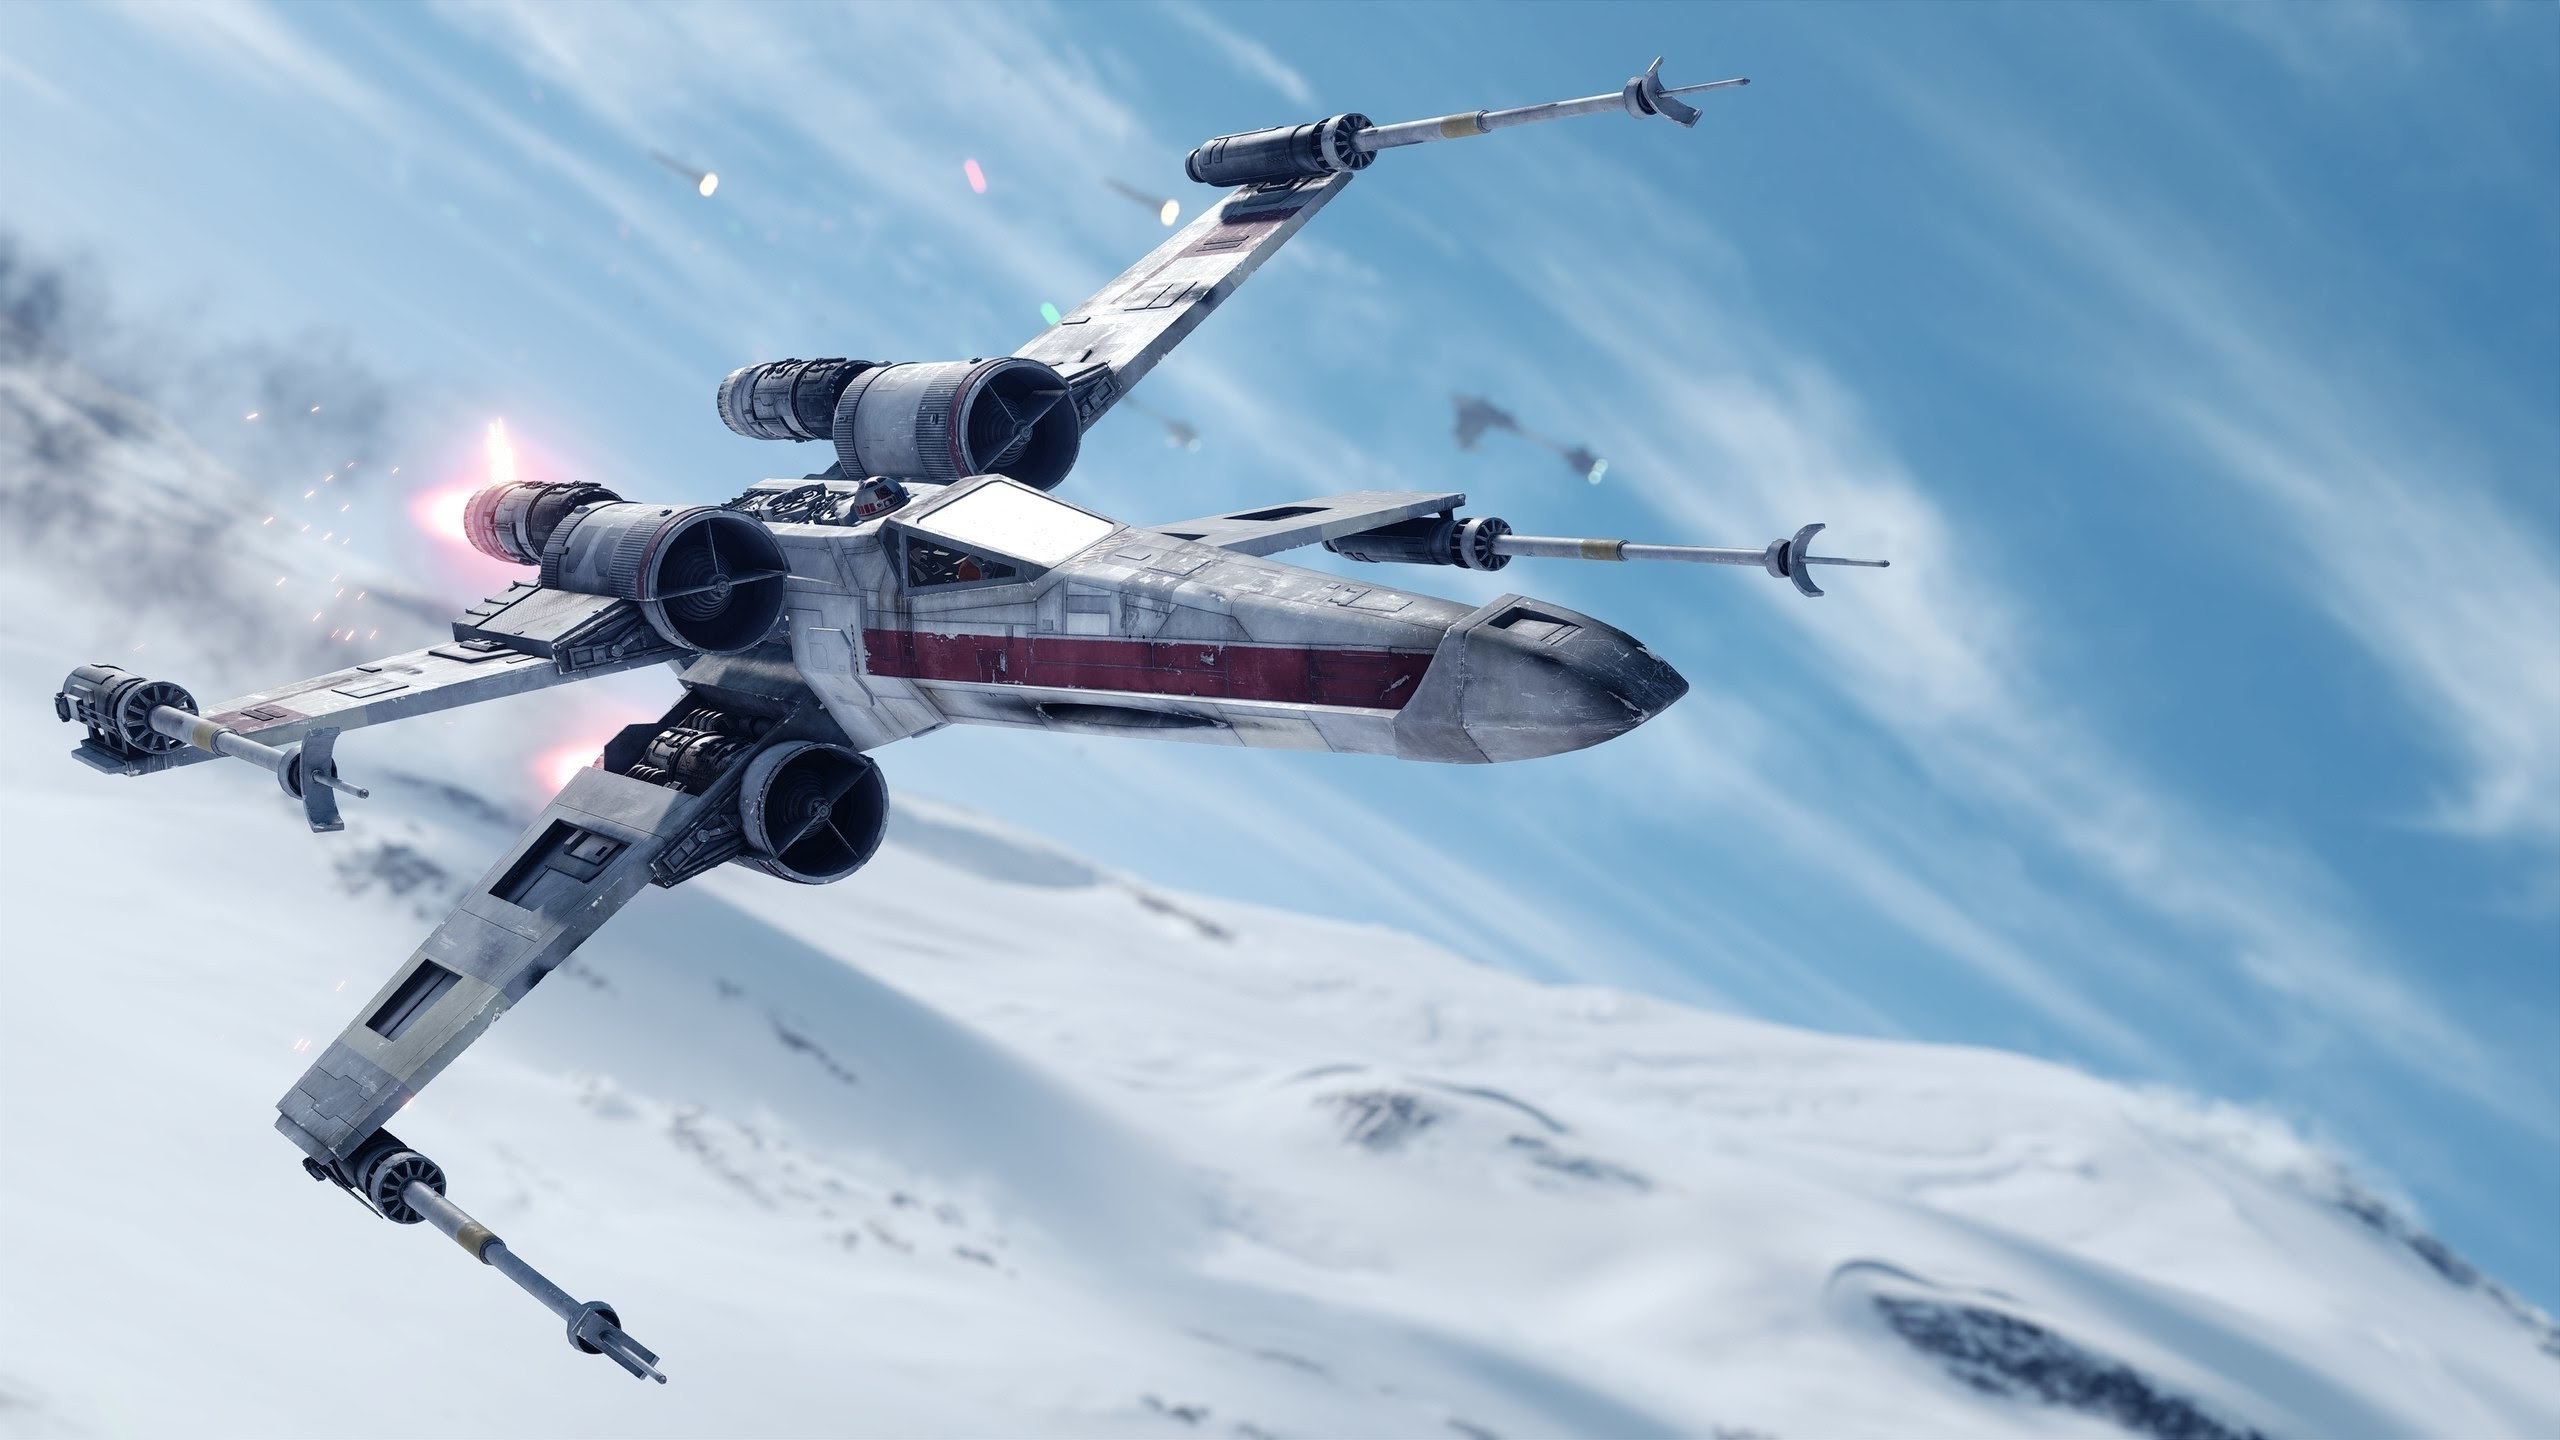 Star Wars Battlefront Star Wars Video Games X Wing Hoth